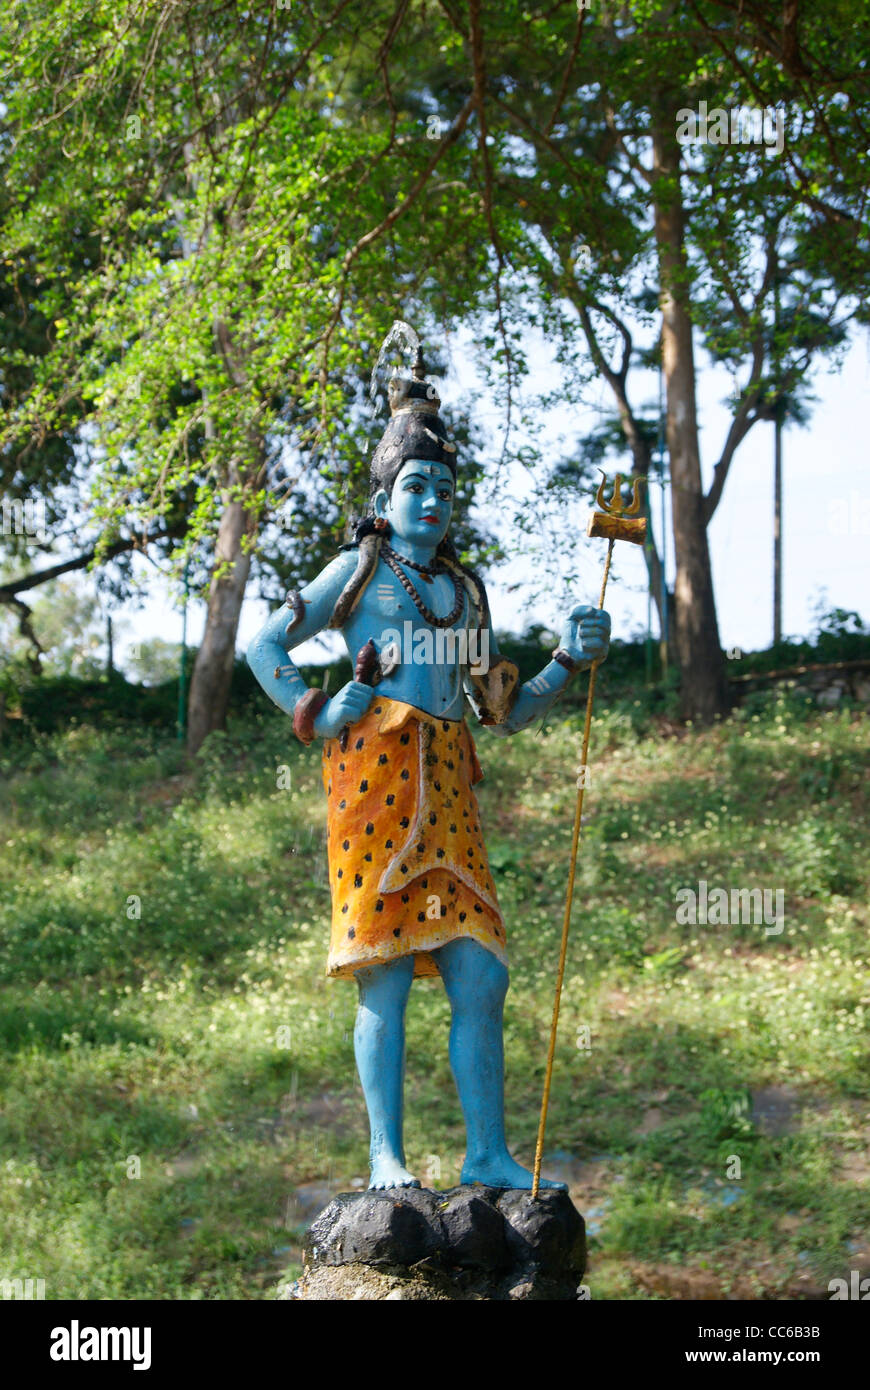 Hindu God Shiva Statue In The Beautiful Green Garden.Water(concept Of Ganga  River) Is Also Flowing From The To Head Of God